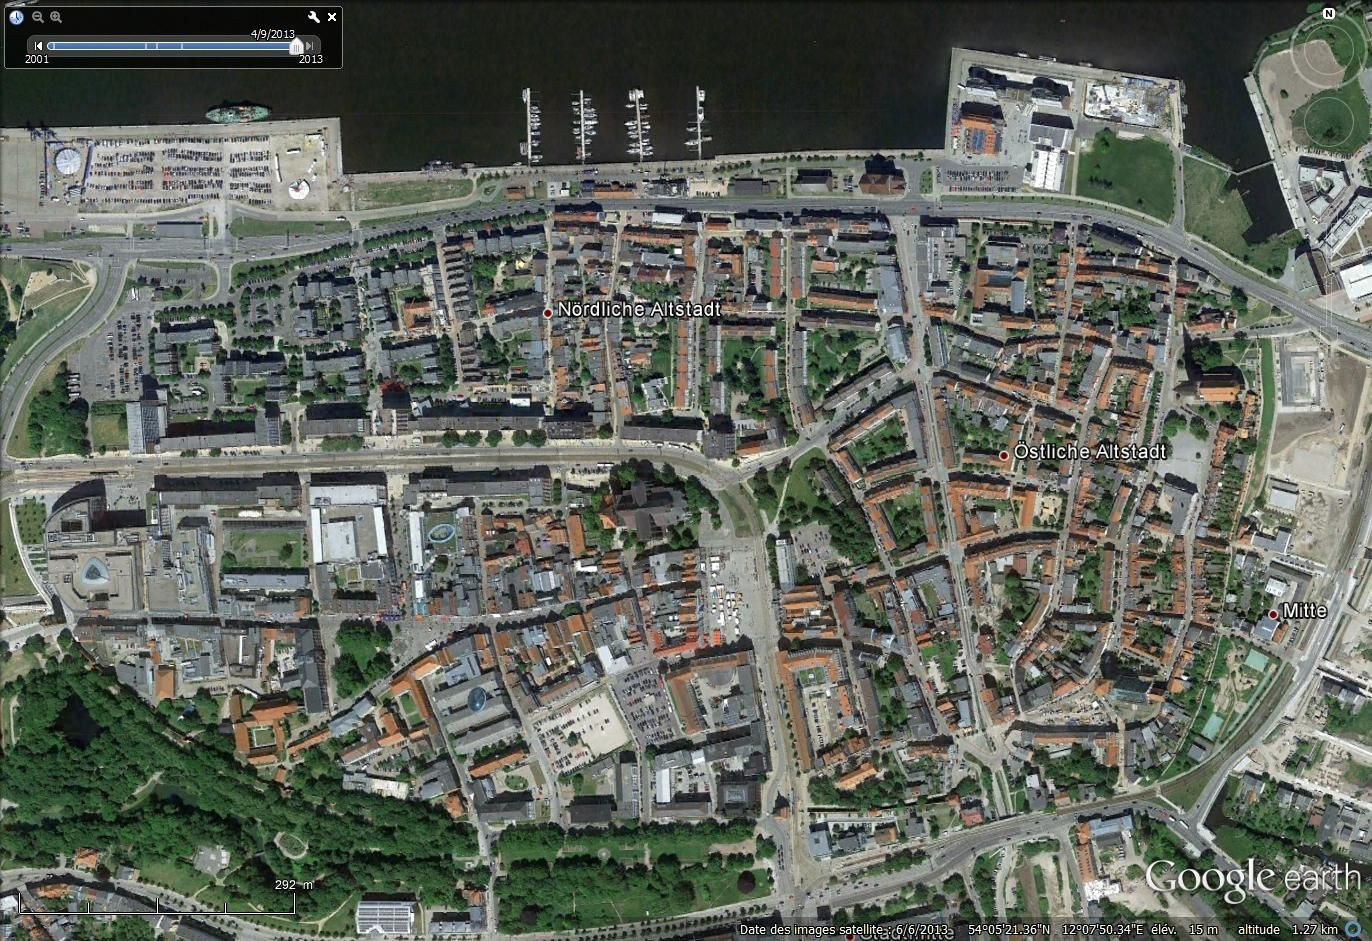 Images satellitales de juin 2013 sur Google earth : Warnemünd et Altstadt